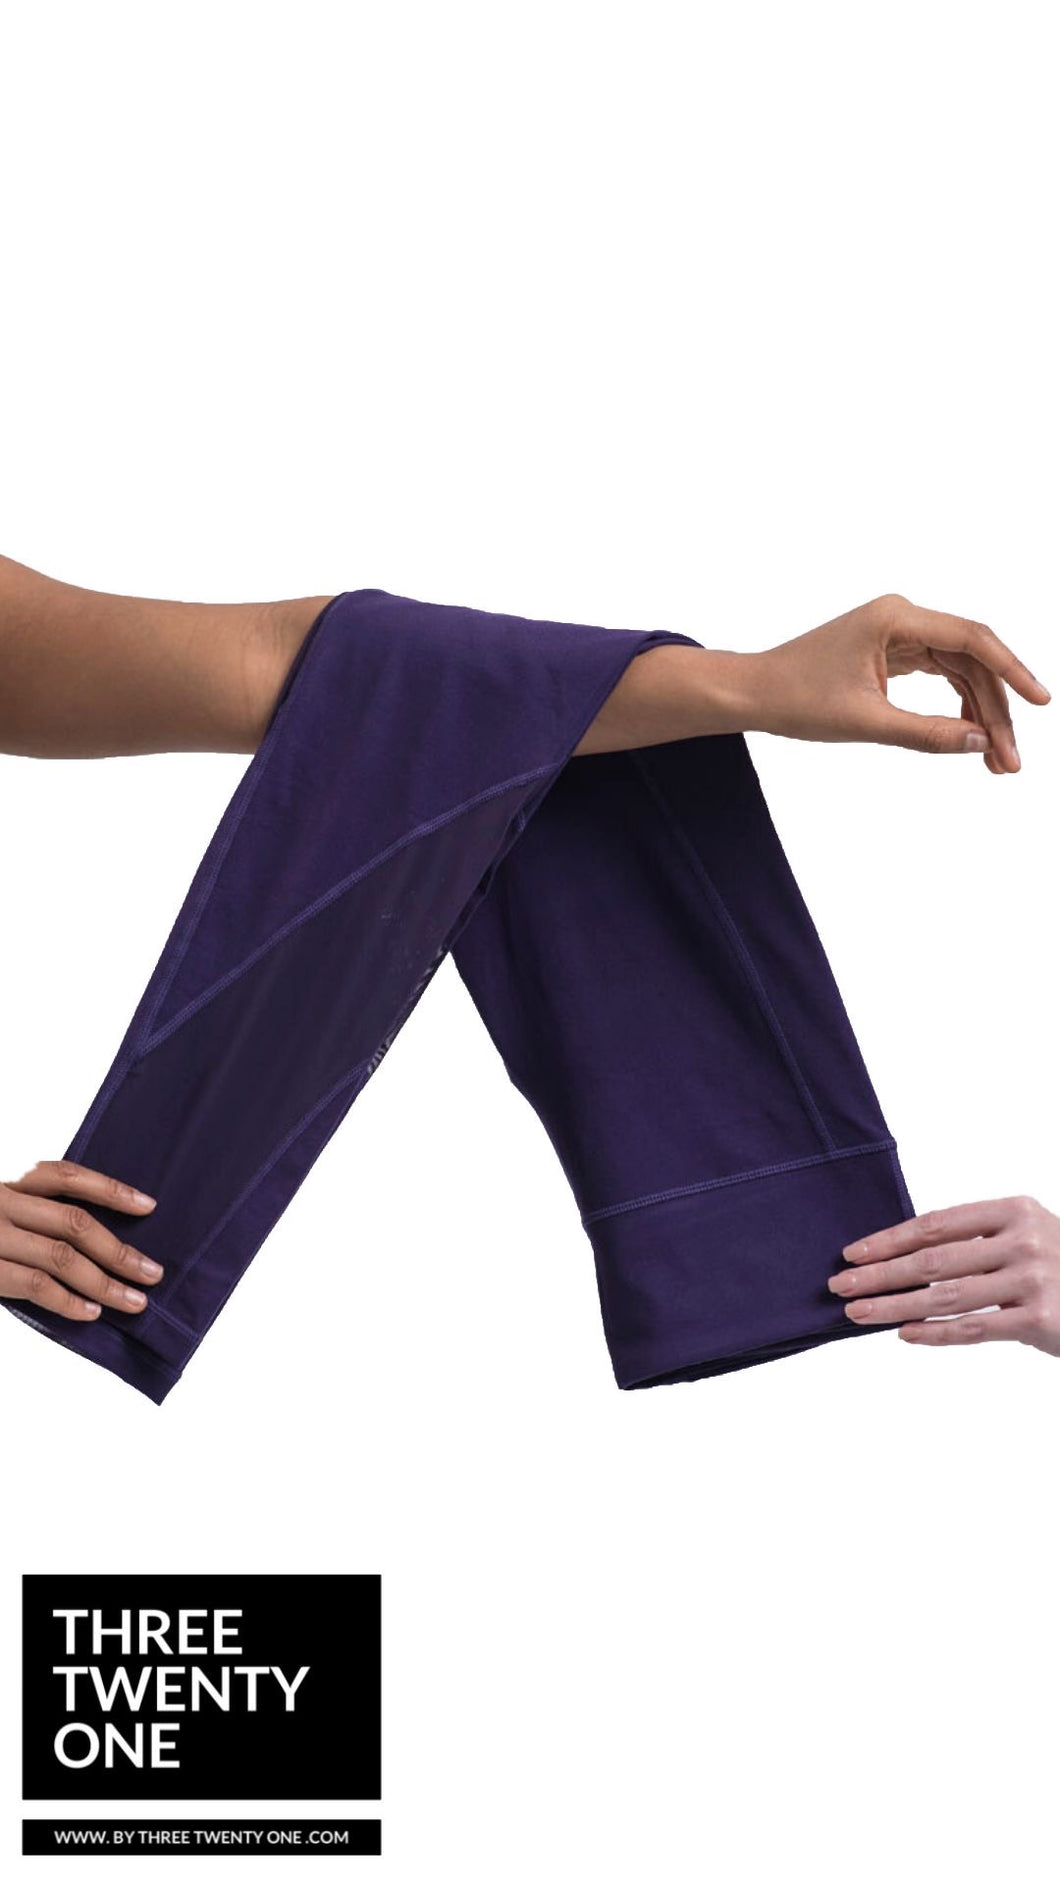 Comes in sizes small, medium, large Eggplant purple leggings  • Ultra soft • 4-way stretch • Mesh panel detailing • Smooth fit • Moisture-wicking and breathable